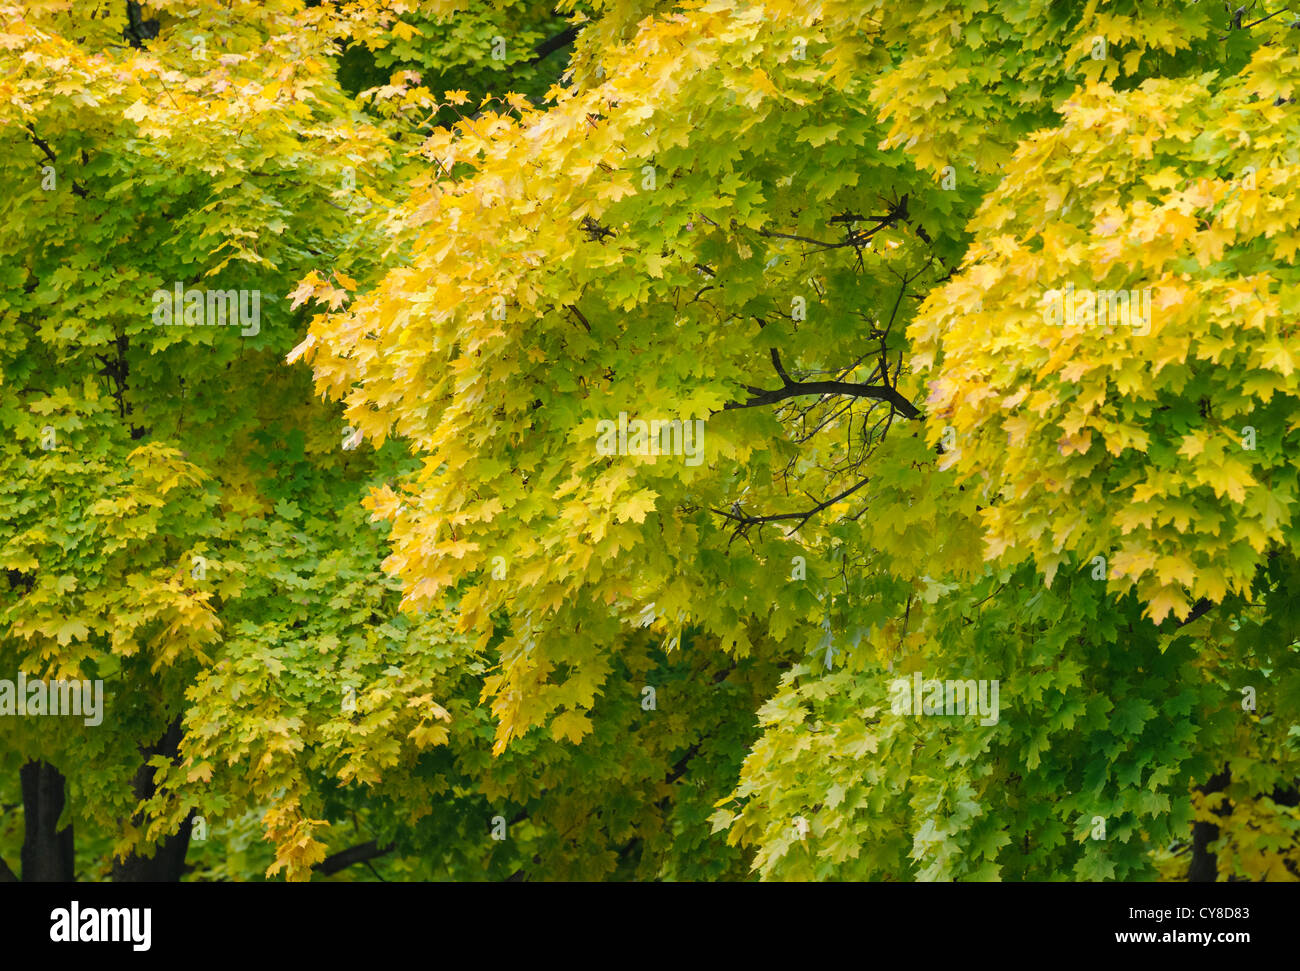 Tree And Leaves Turning Yellow Falling